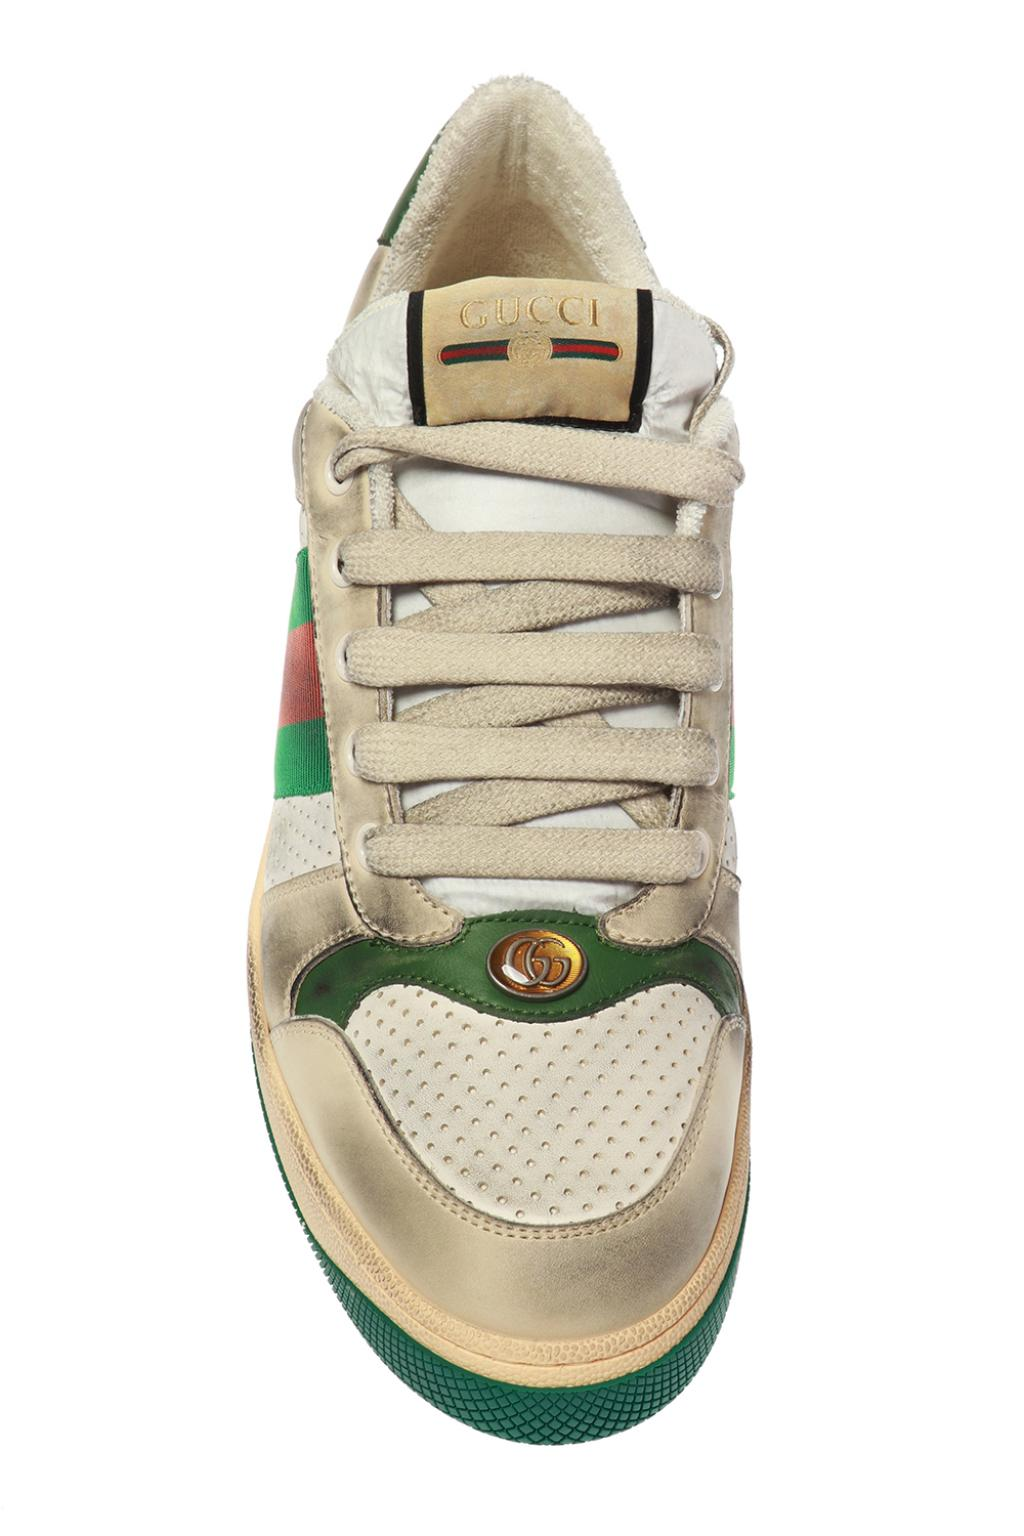 Gucci 'Screener' sneakers with 'Web' stripes